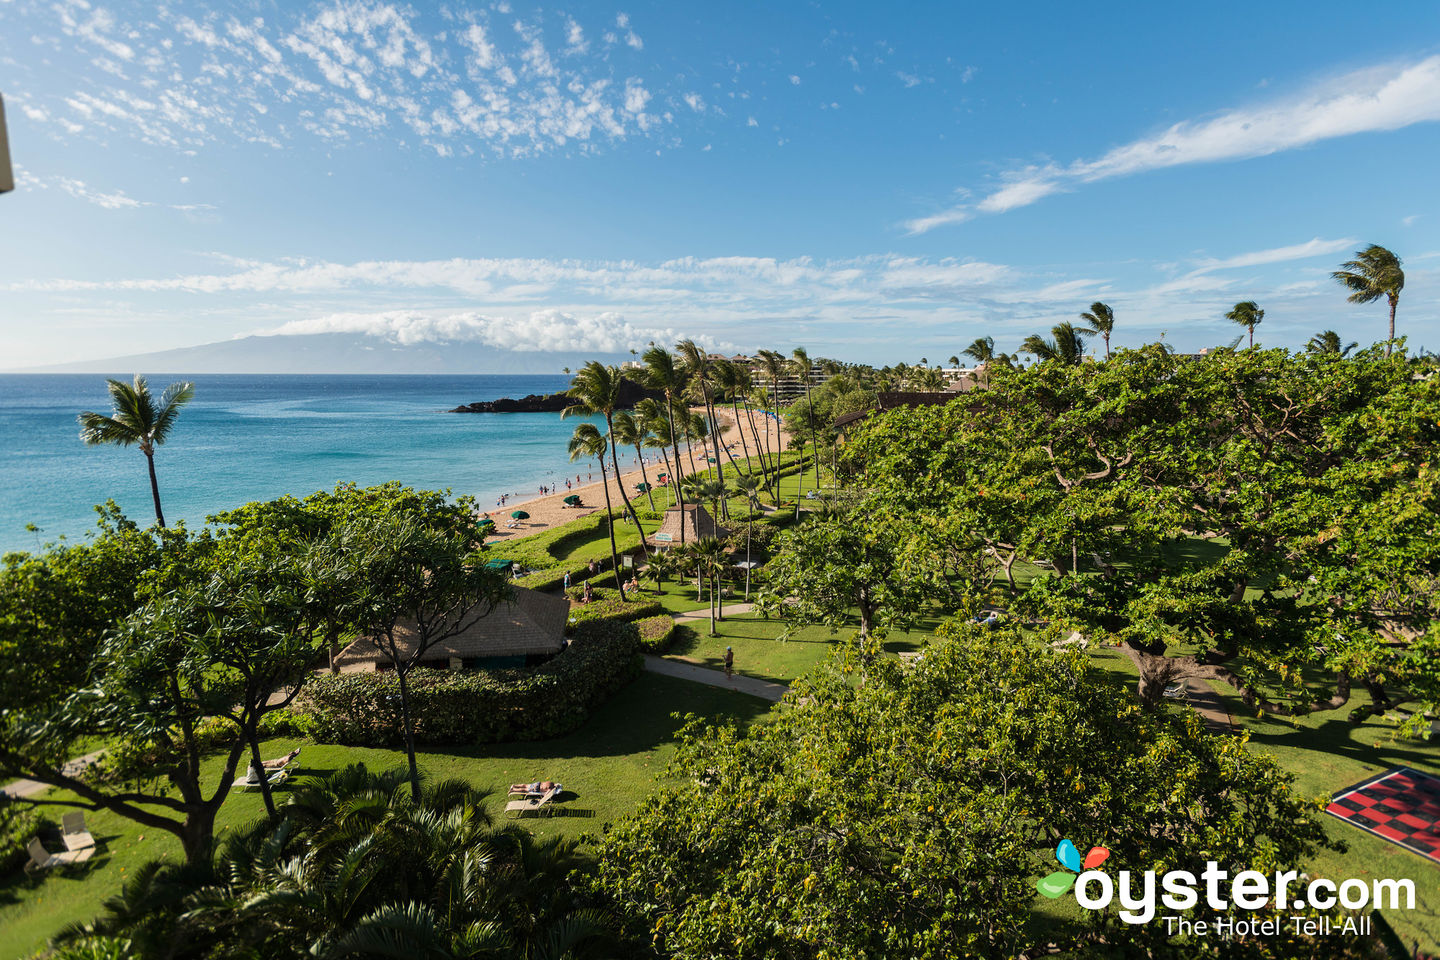 Ka Anapali Beach Hotel Review What To